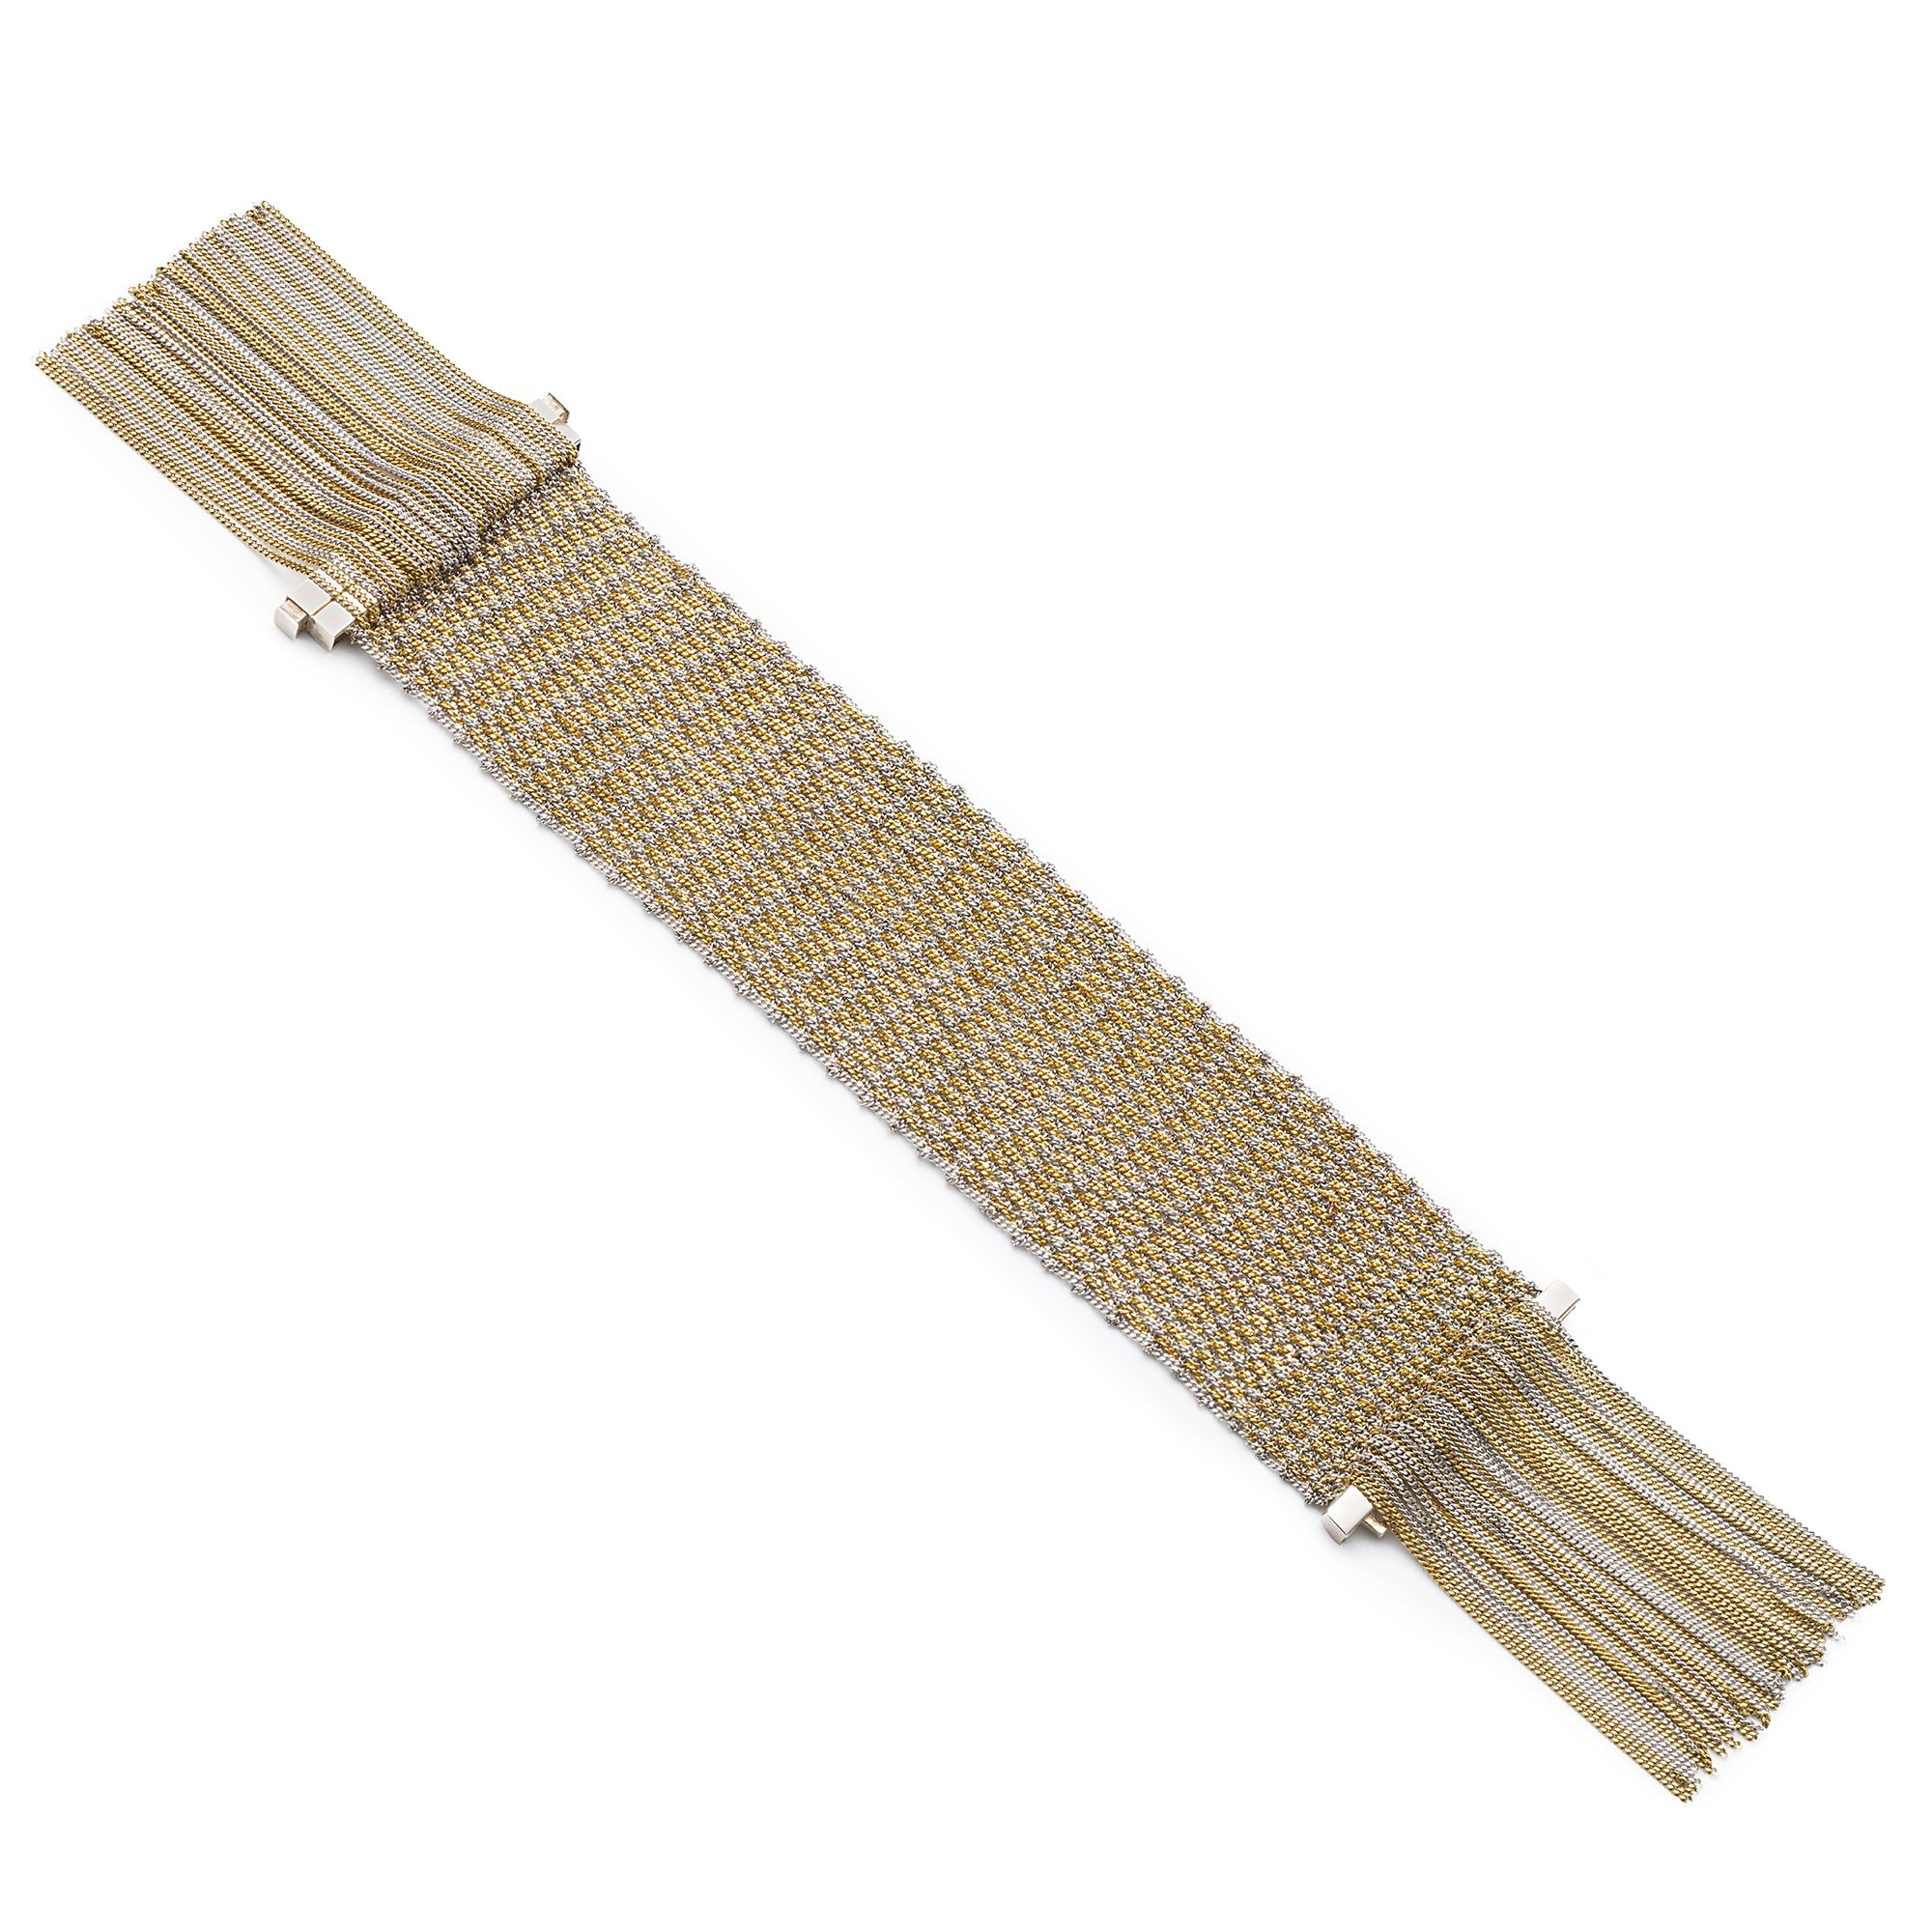 Silver knit bracelet with fringes Silver and gold plated bracelet